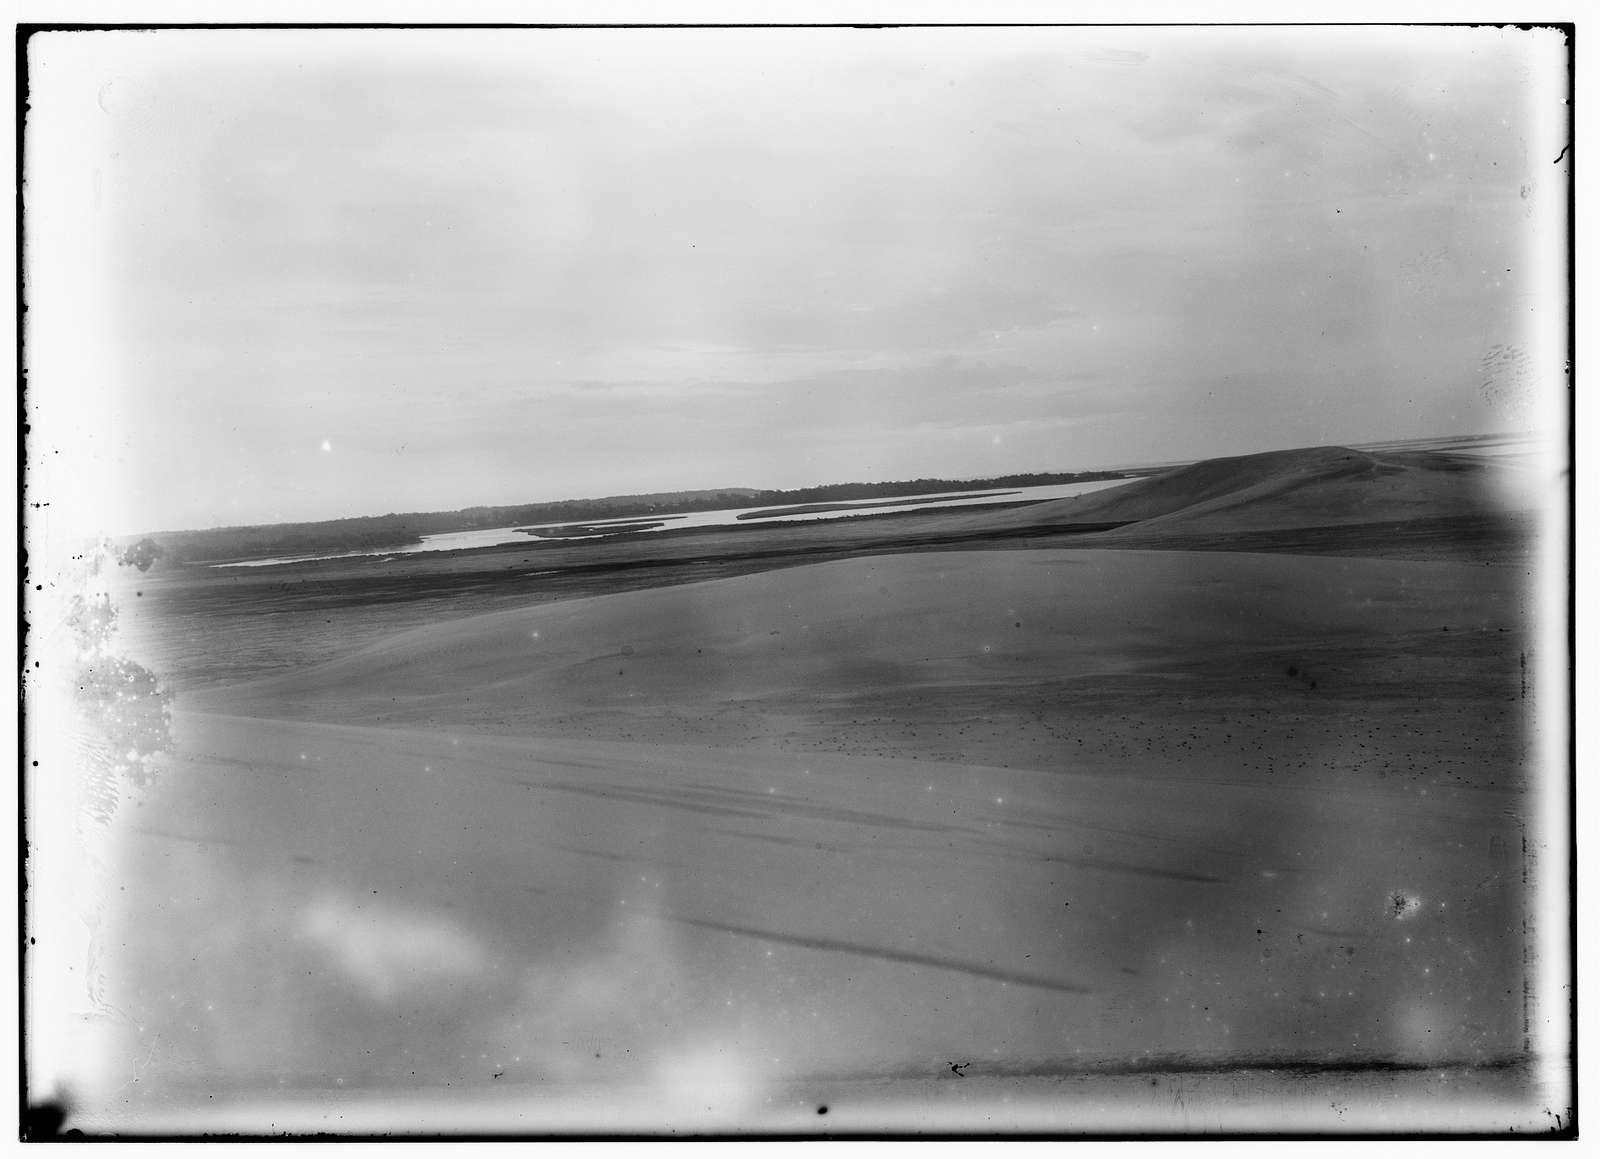 [Long-range view of the Wright brothers' camp and Kitty Hawk Bay]